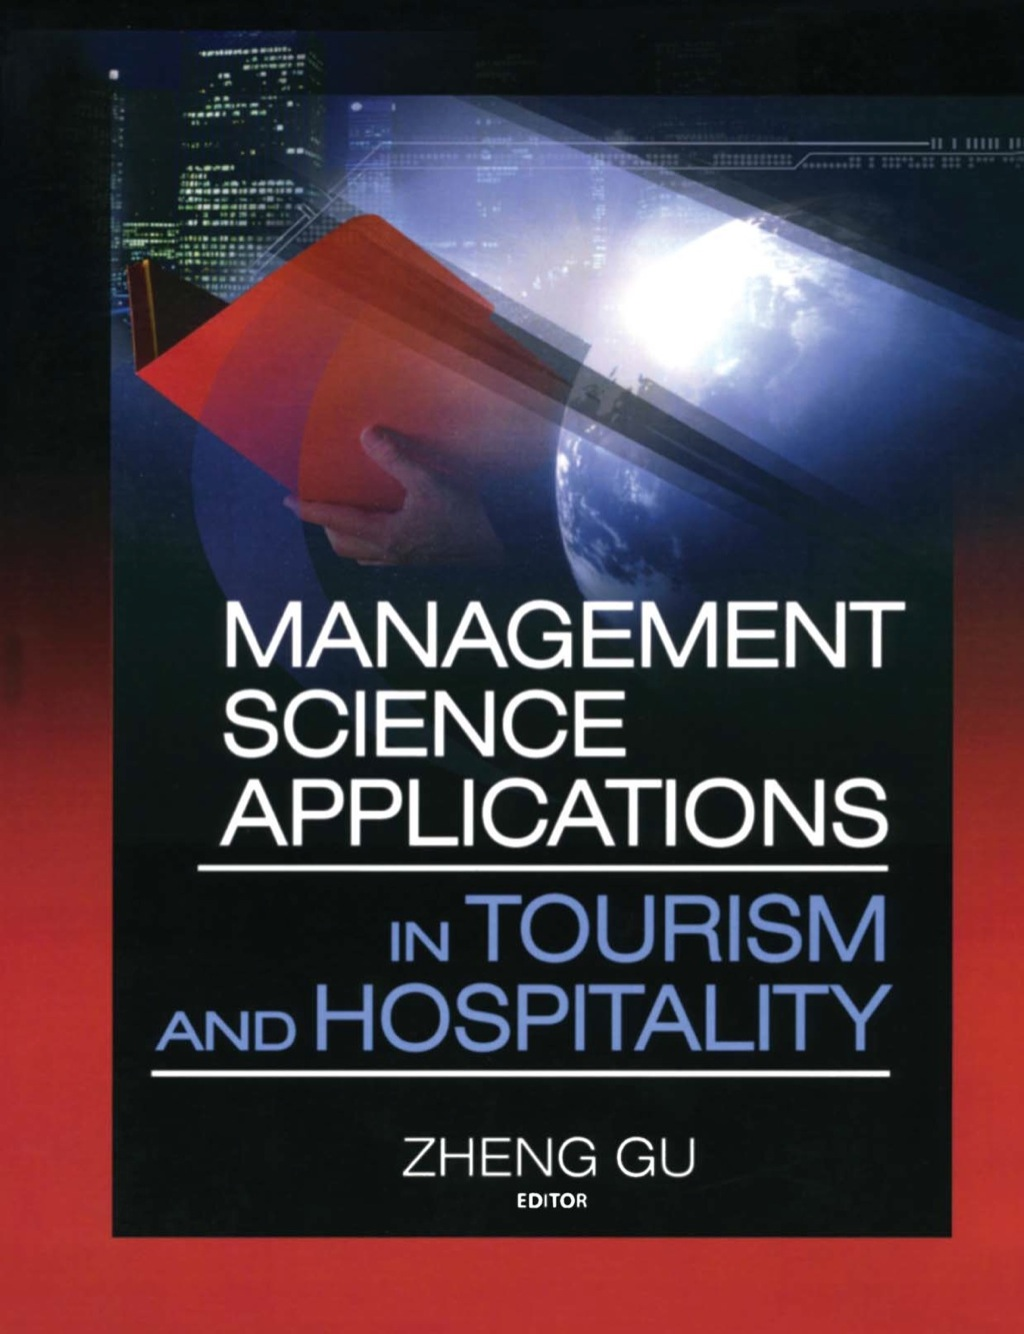 Management Science Applications in Tourism and Hospitality (eBook Rental)